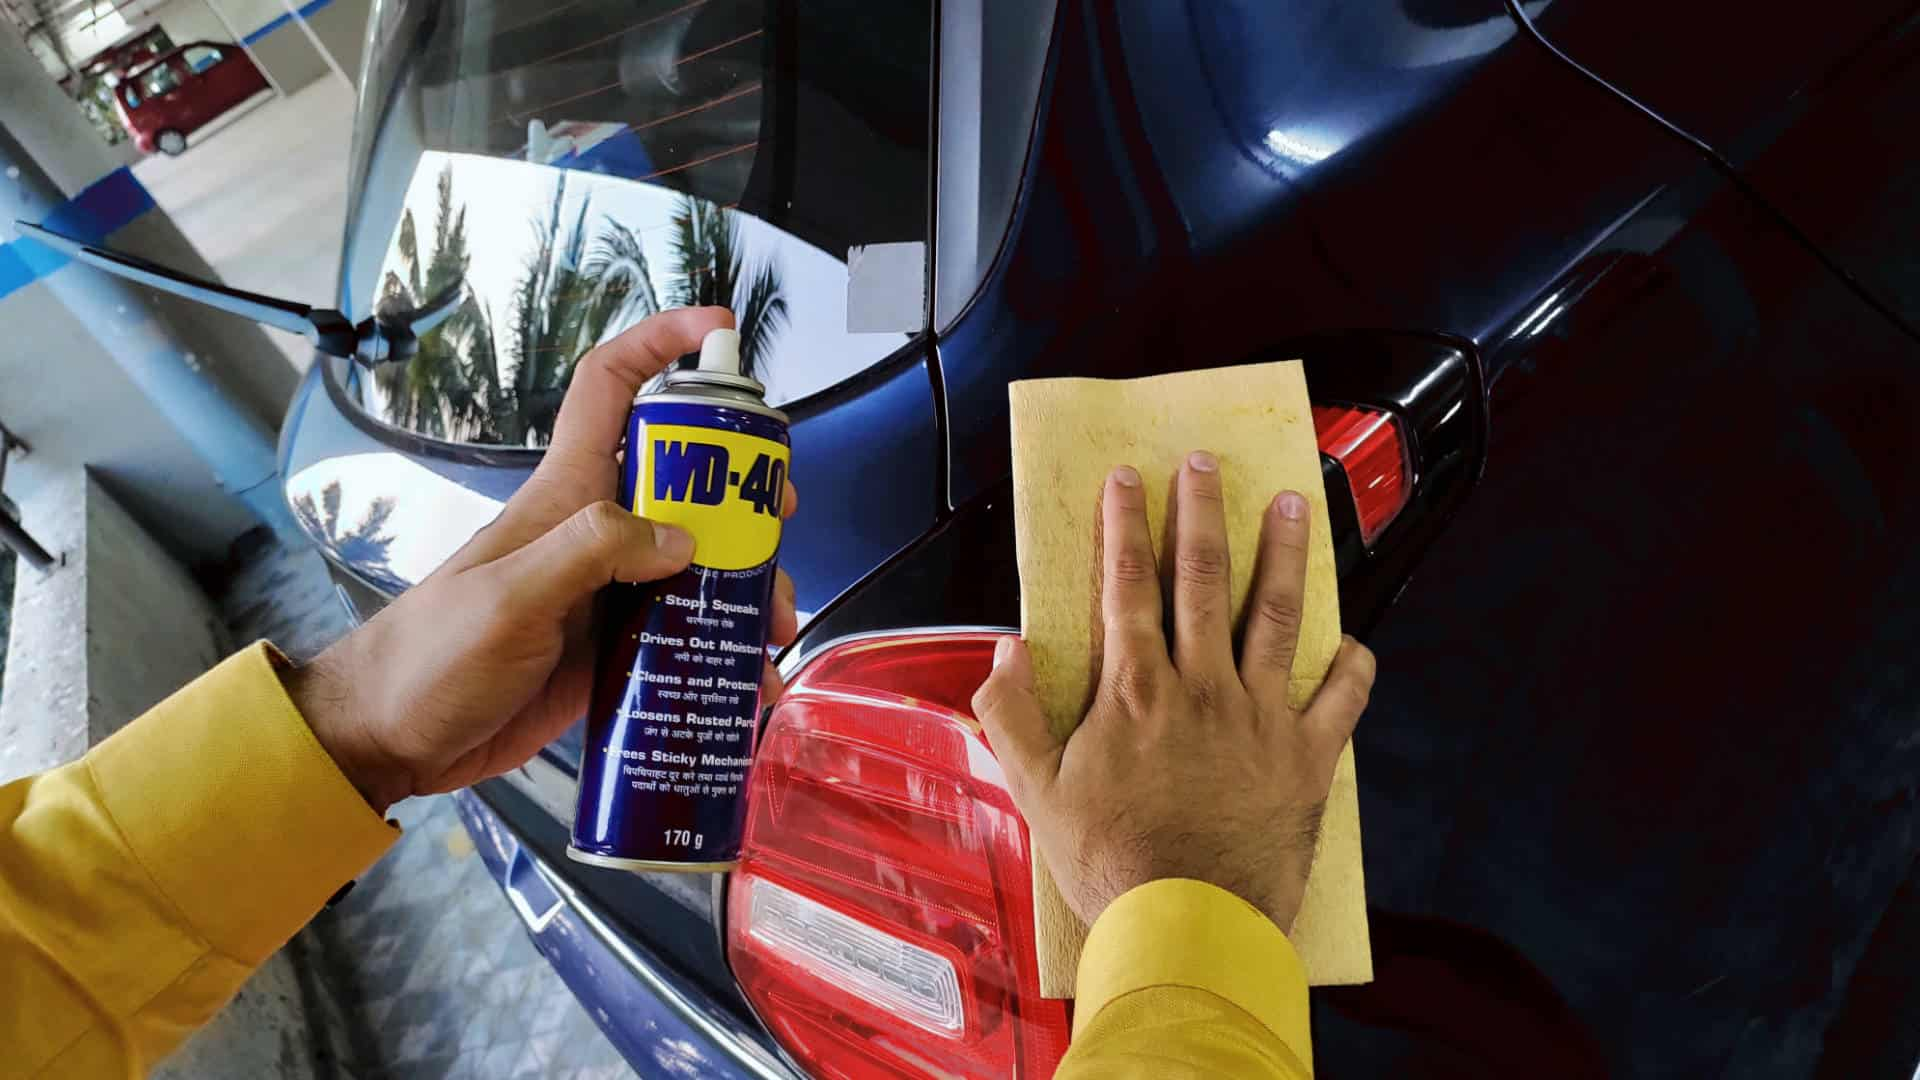 wd 40 car wash